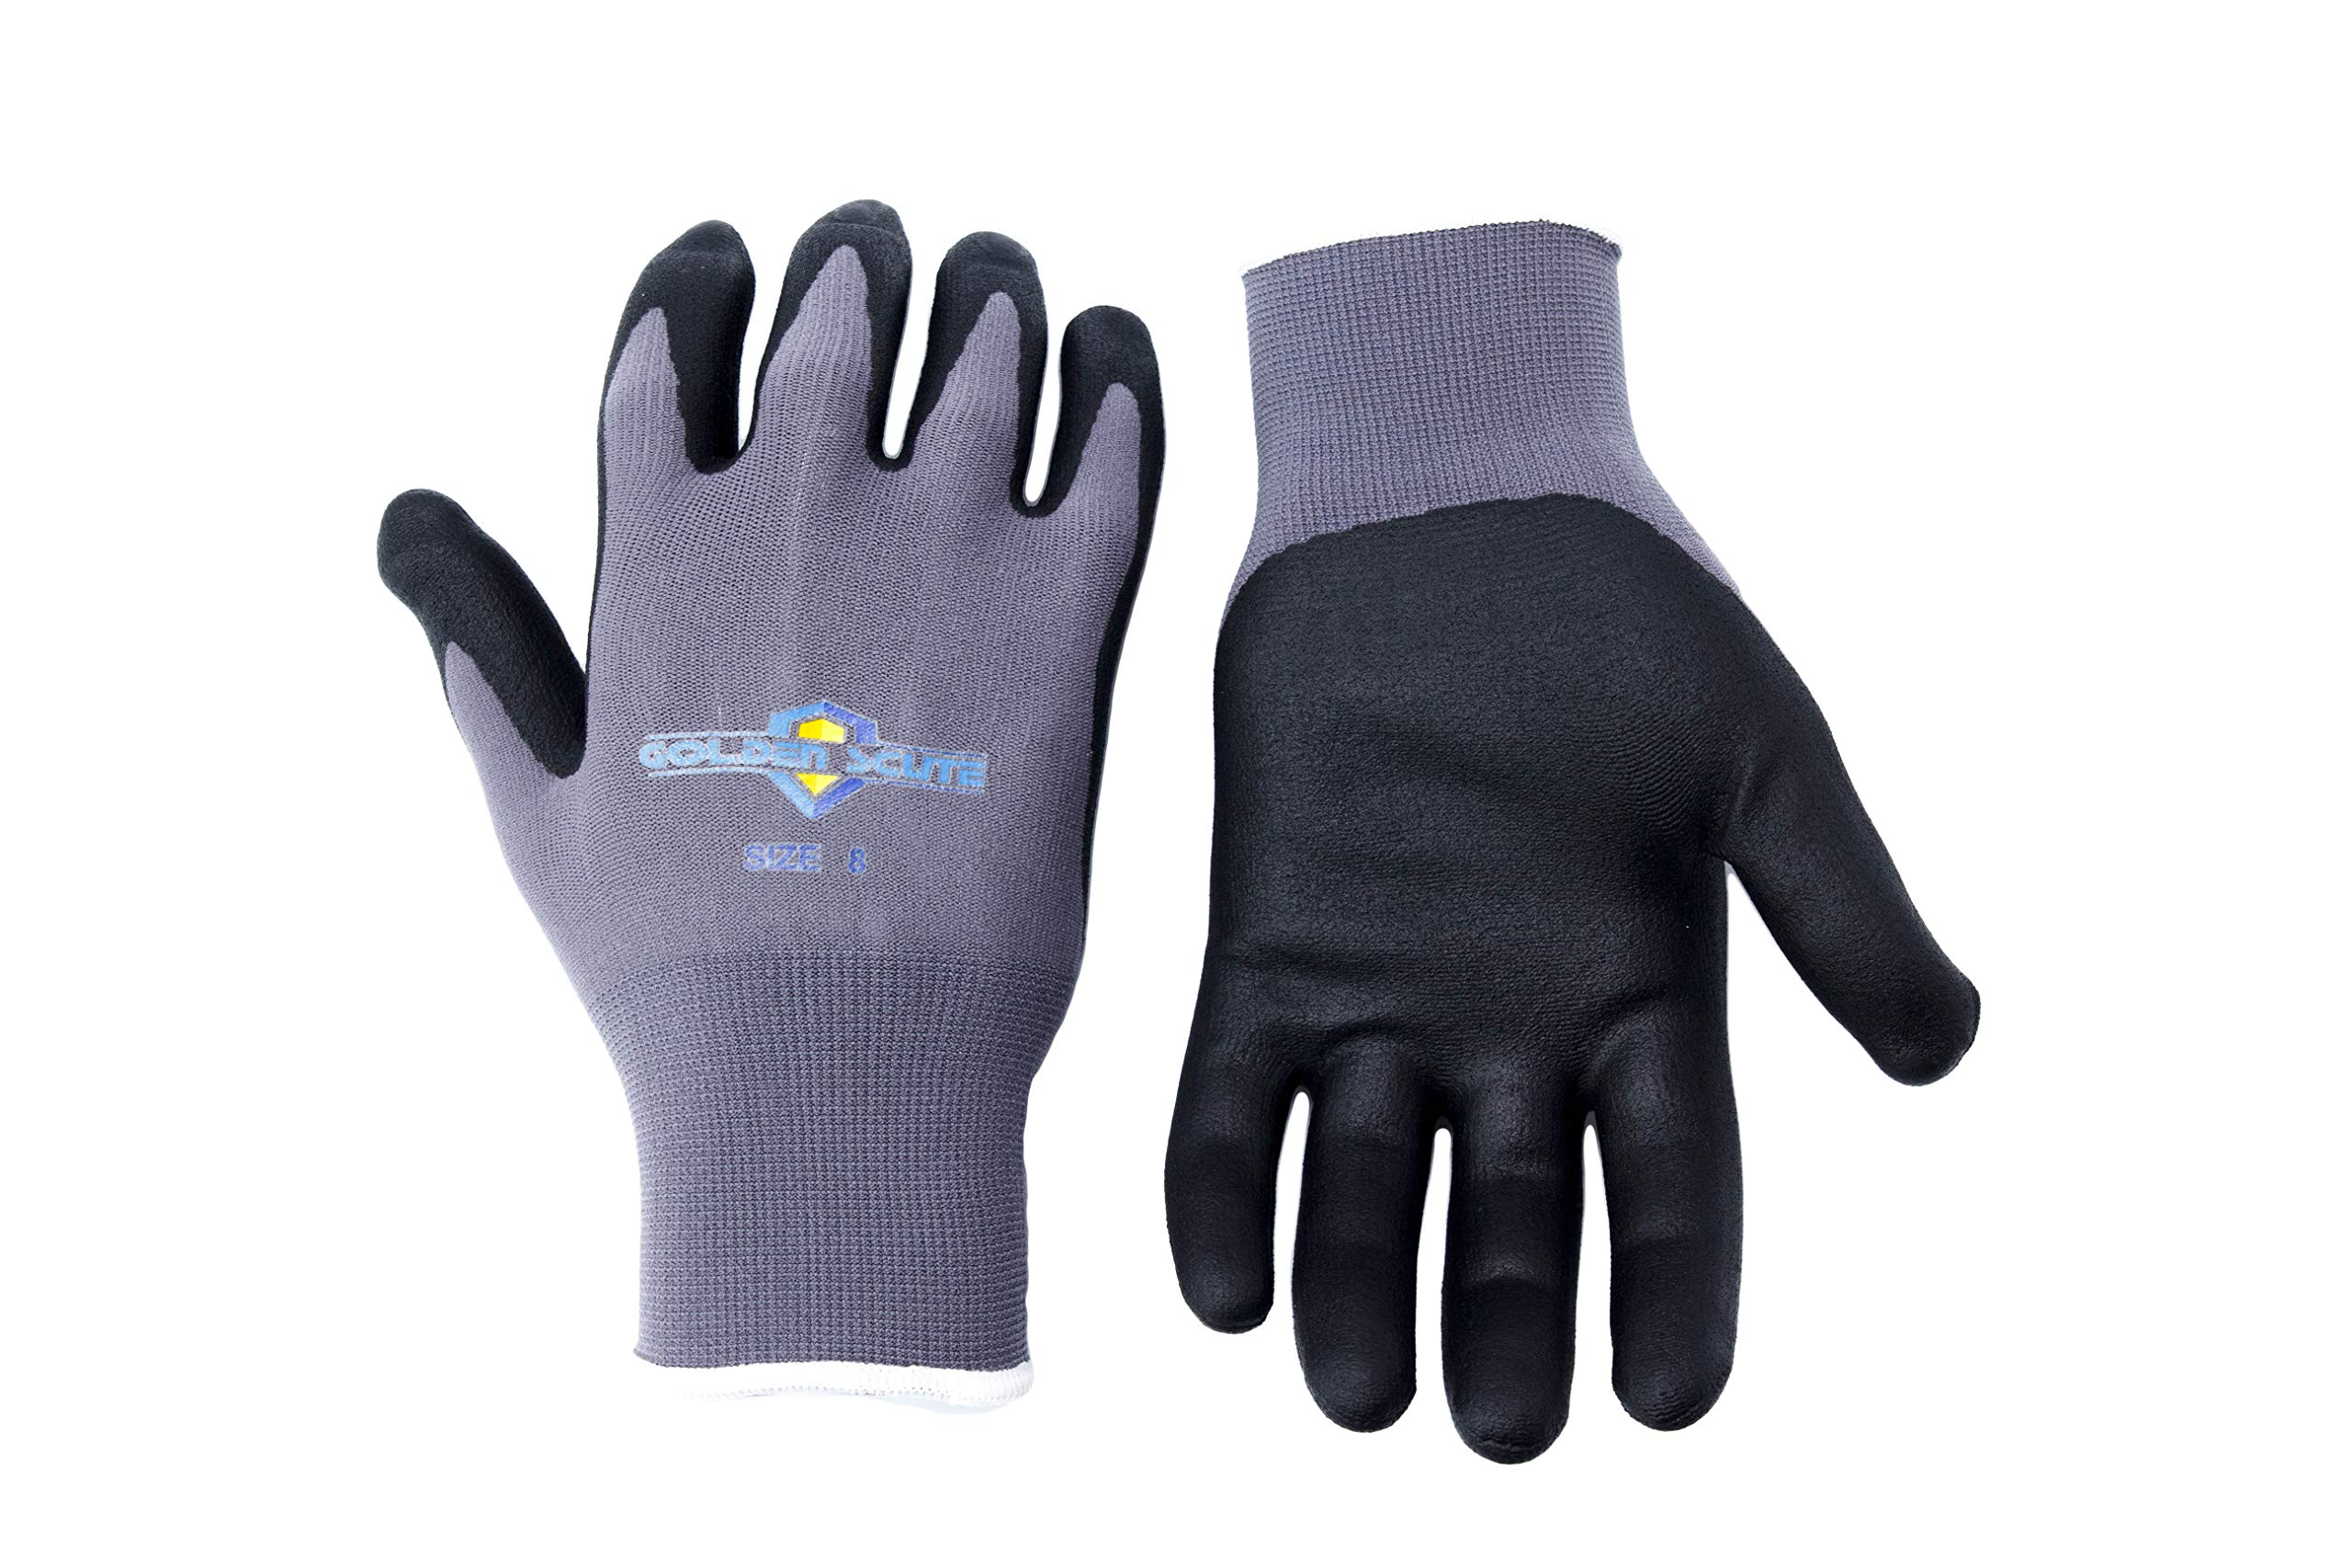 Golden Scute 6 Pairs Micro-Foamed/Ultra-Thin Nitrile Coated Work Glove, Touchscreen Technology, Safety Gloves for Landscaping, Material Handling, Gardening, Assembly (Medium/Size 8)